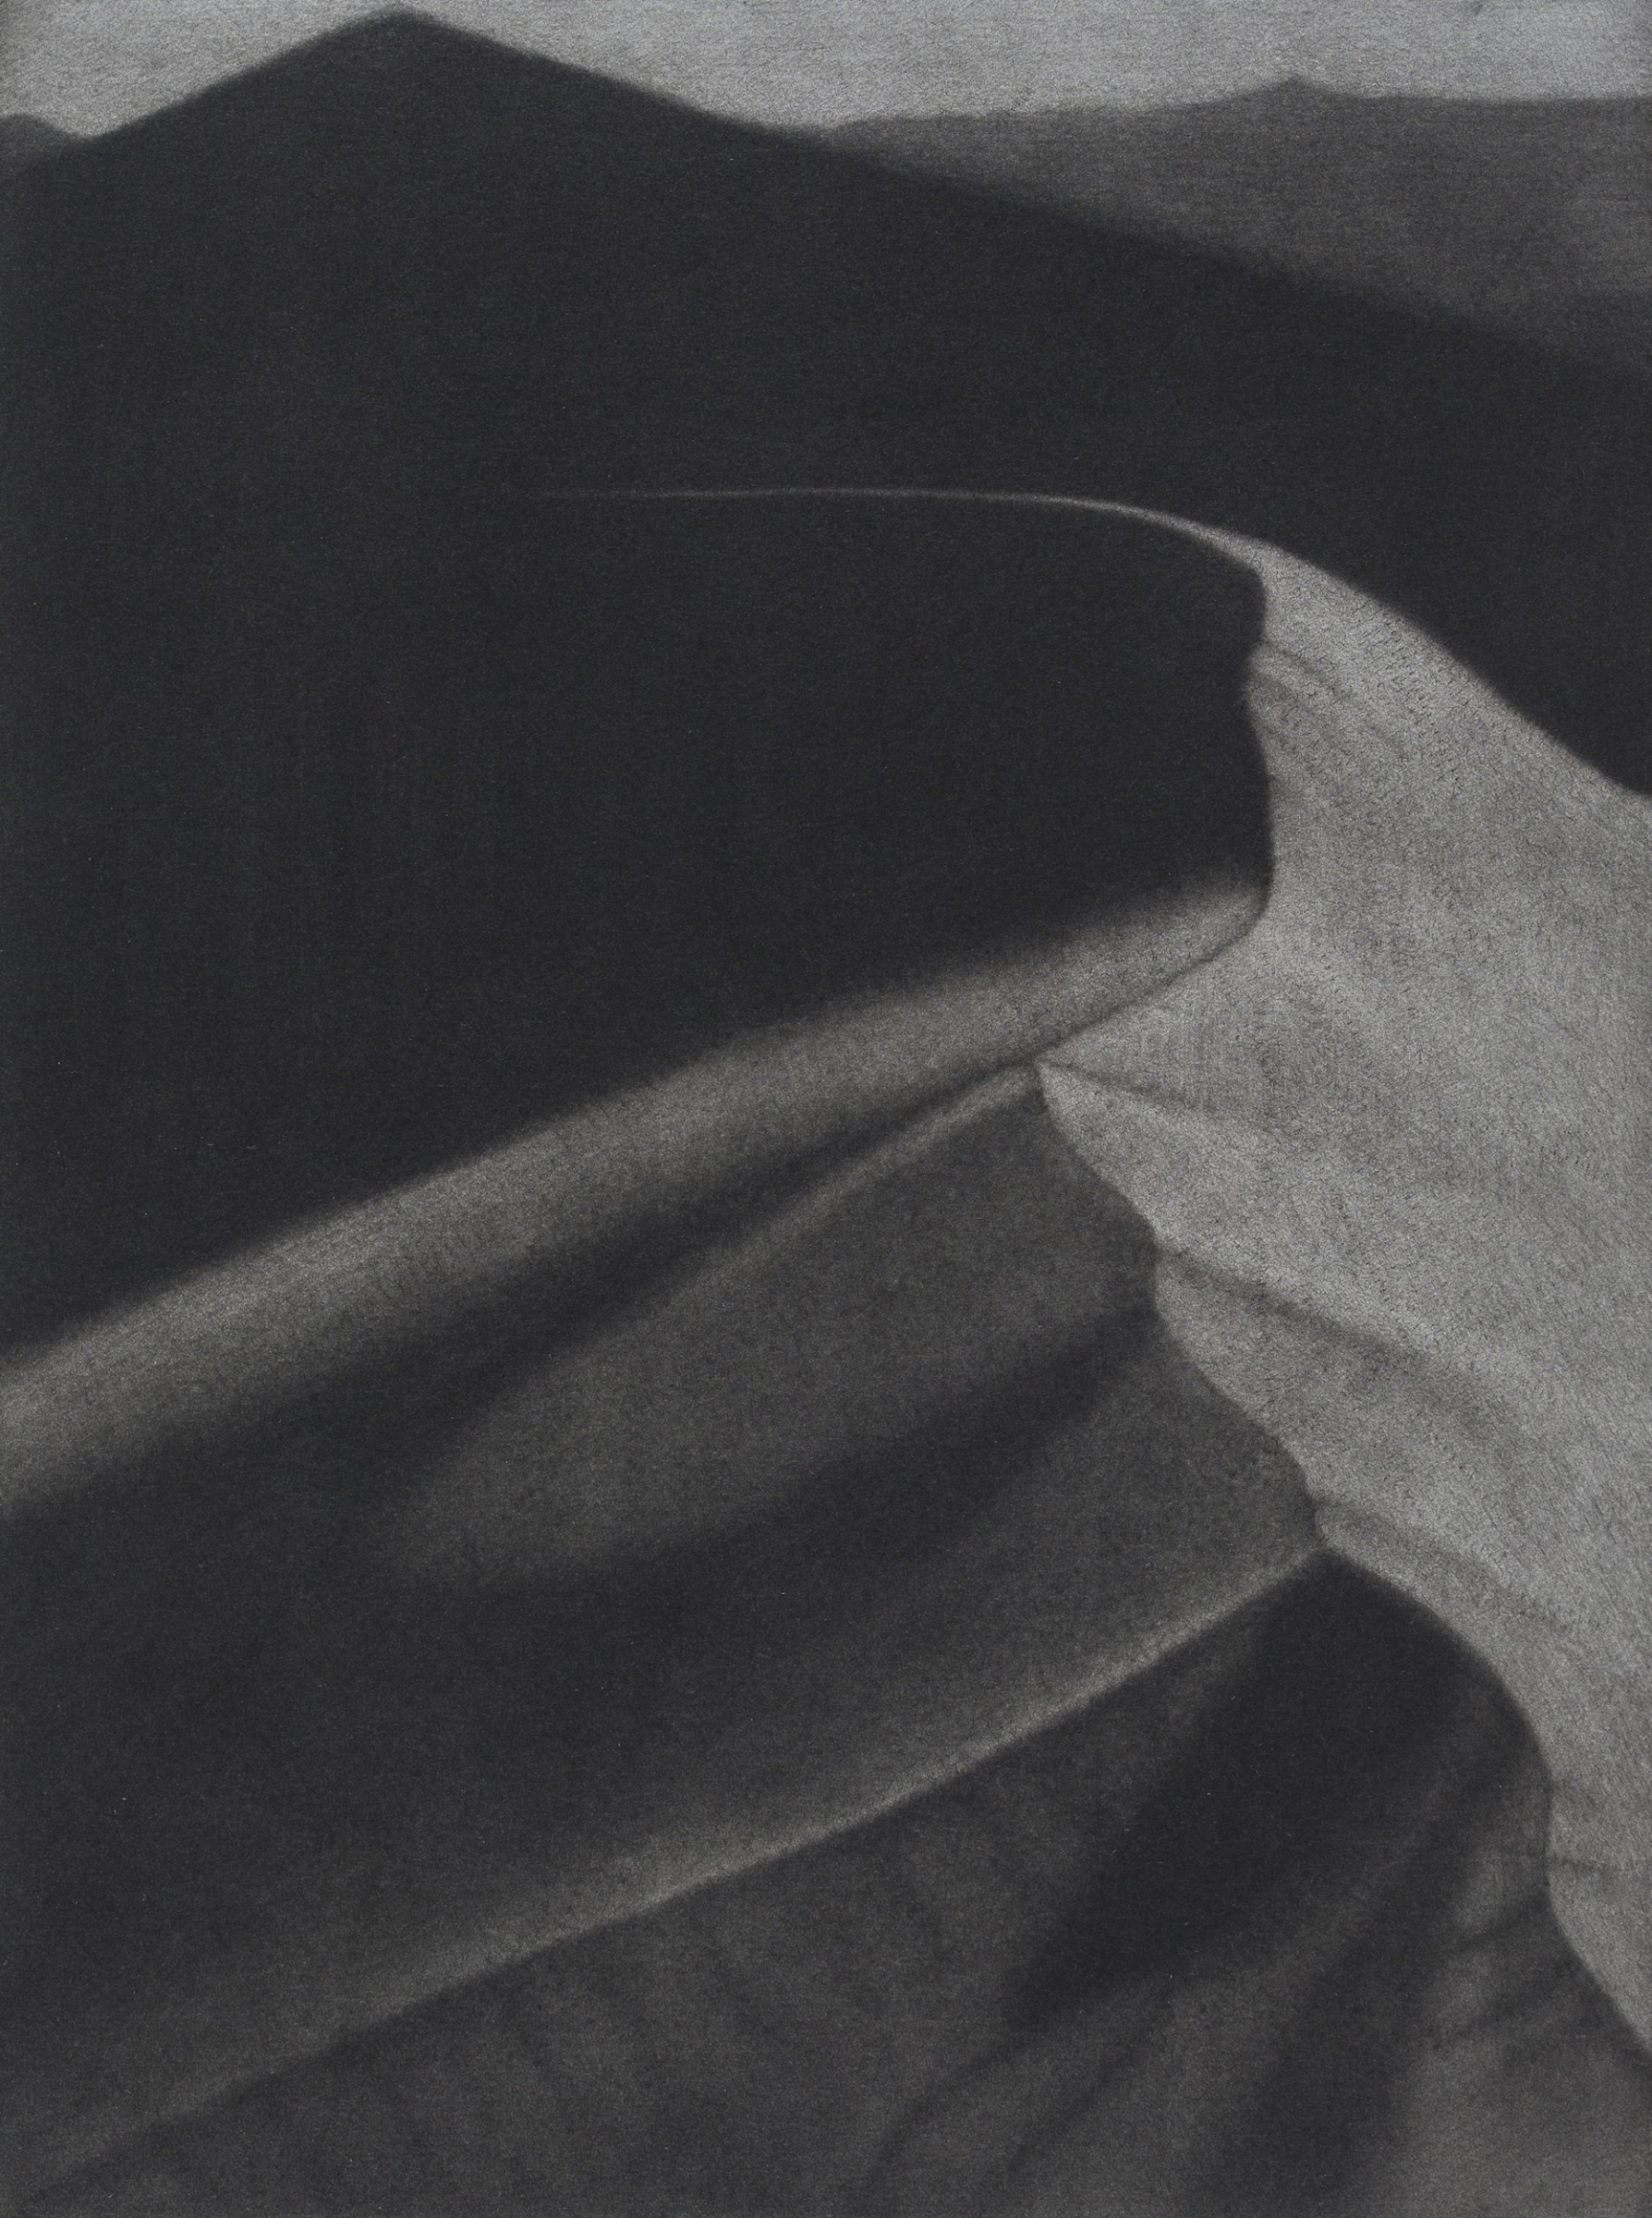 """<span class=""""link fancybox-details-link""""><a href=""""/exhibitions/17/works/image_standalone667/"""">View Detail Page</a></span><p><strong>Holly Downing</strong></p><p>The Sahara</p><p>mezzotint, ed of 30</p><p>45 x 39cm</p><p>£540 framed</p><p>£400 unframed</p>"""